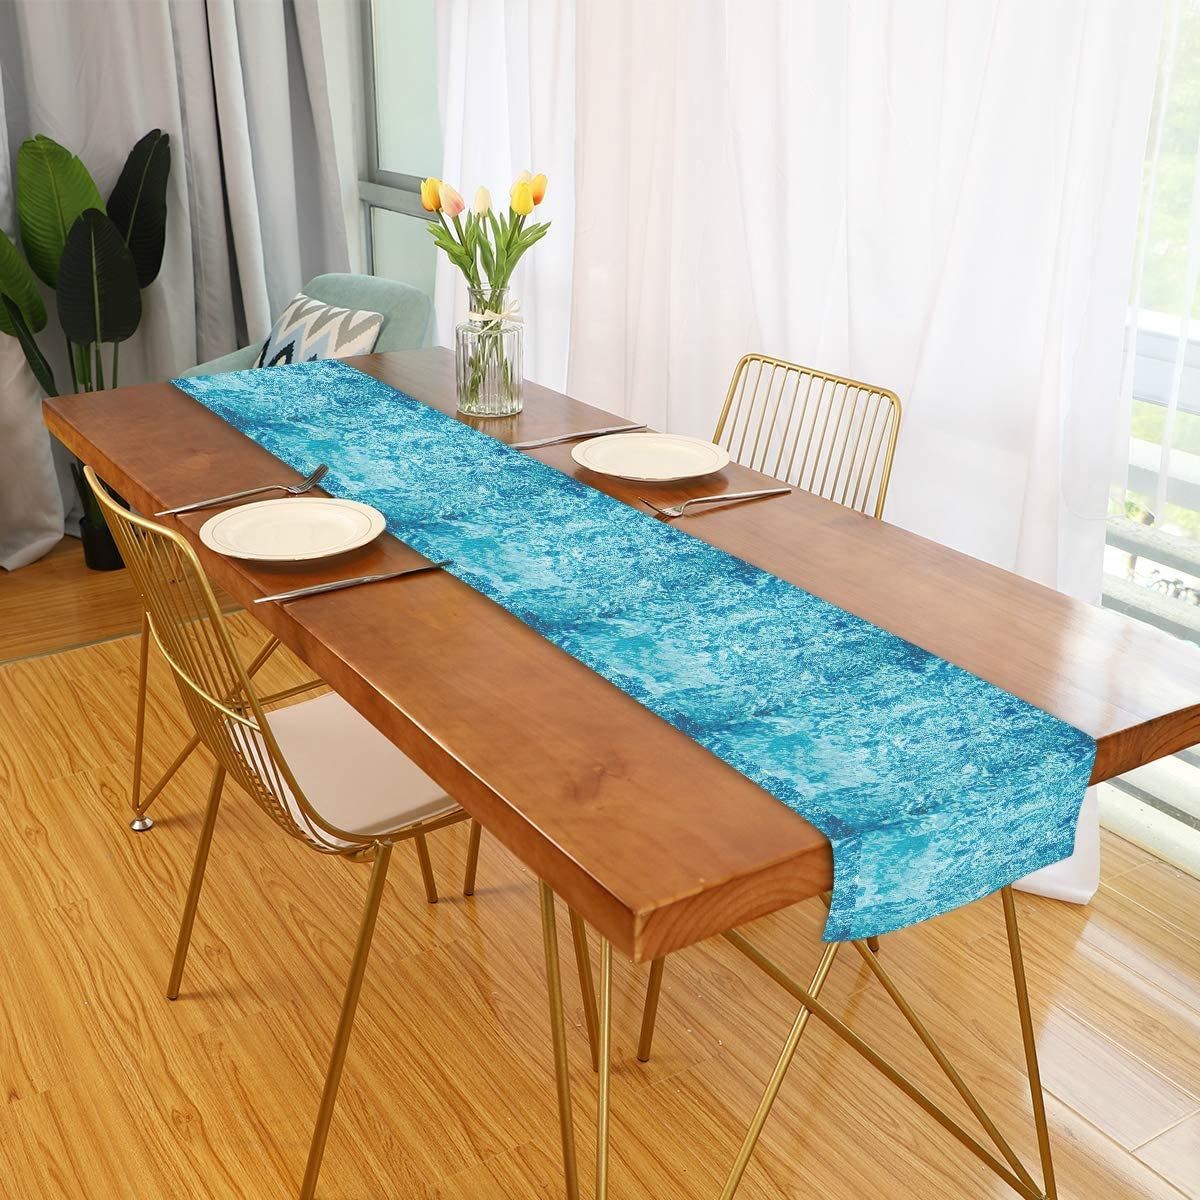 Amazon Com Table Runner Turquoise Sea Ocean Wave Blue Square Folding Dining Table Decor Scarves Non Slip Modern Dinning Table Runners Cover Cloth Mat For Coffee Kitchen Paty Patio Rectangular 90 Home Kitchen